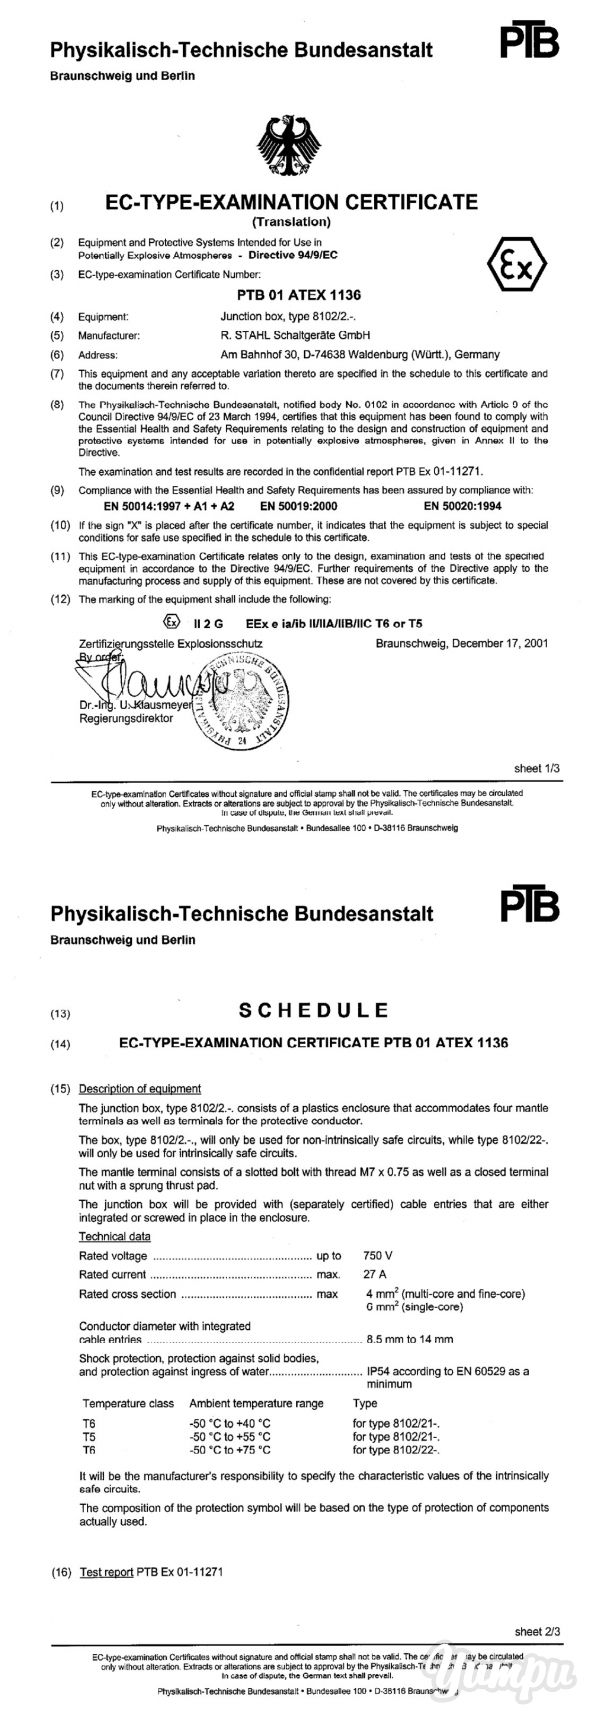 PTB 01 ATEX 1136 - R. Stahl - Magazine with 5 pages: PTB 01 ATEX 1136 - R. Stahl